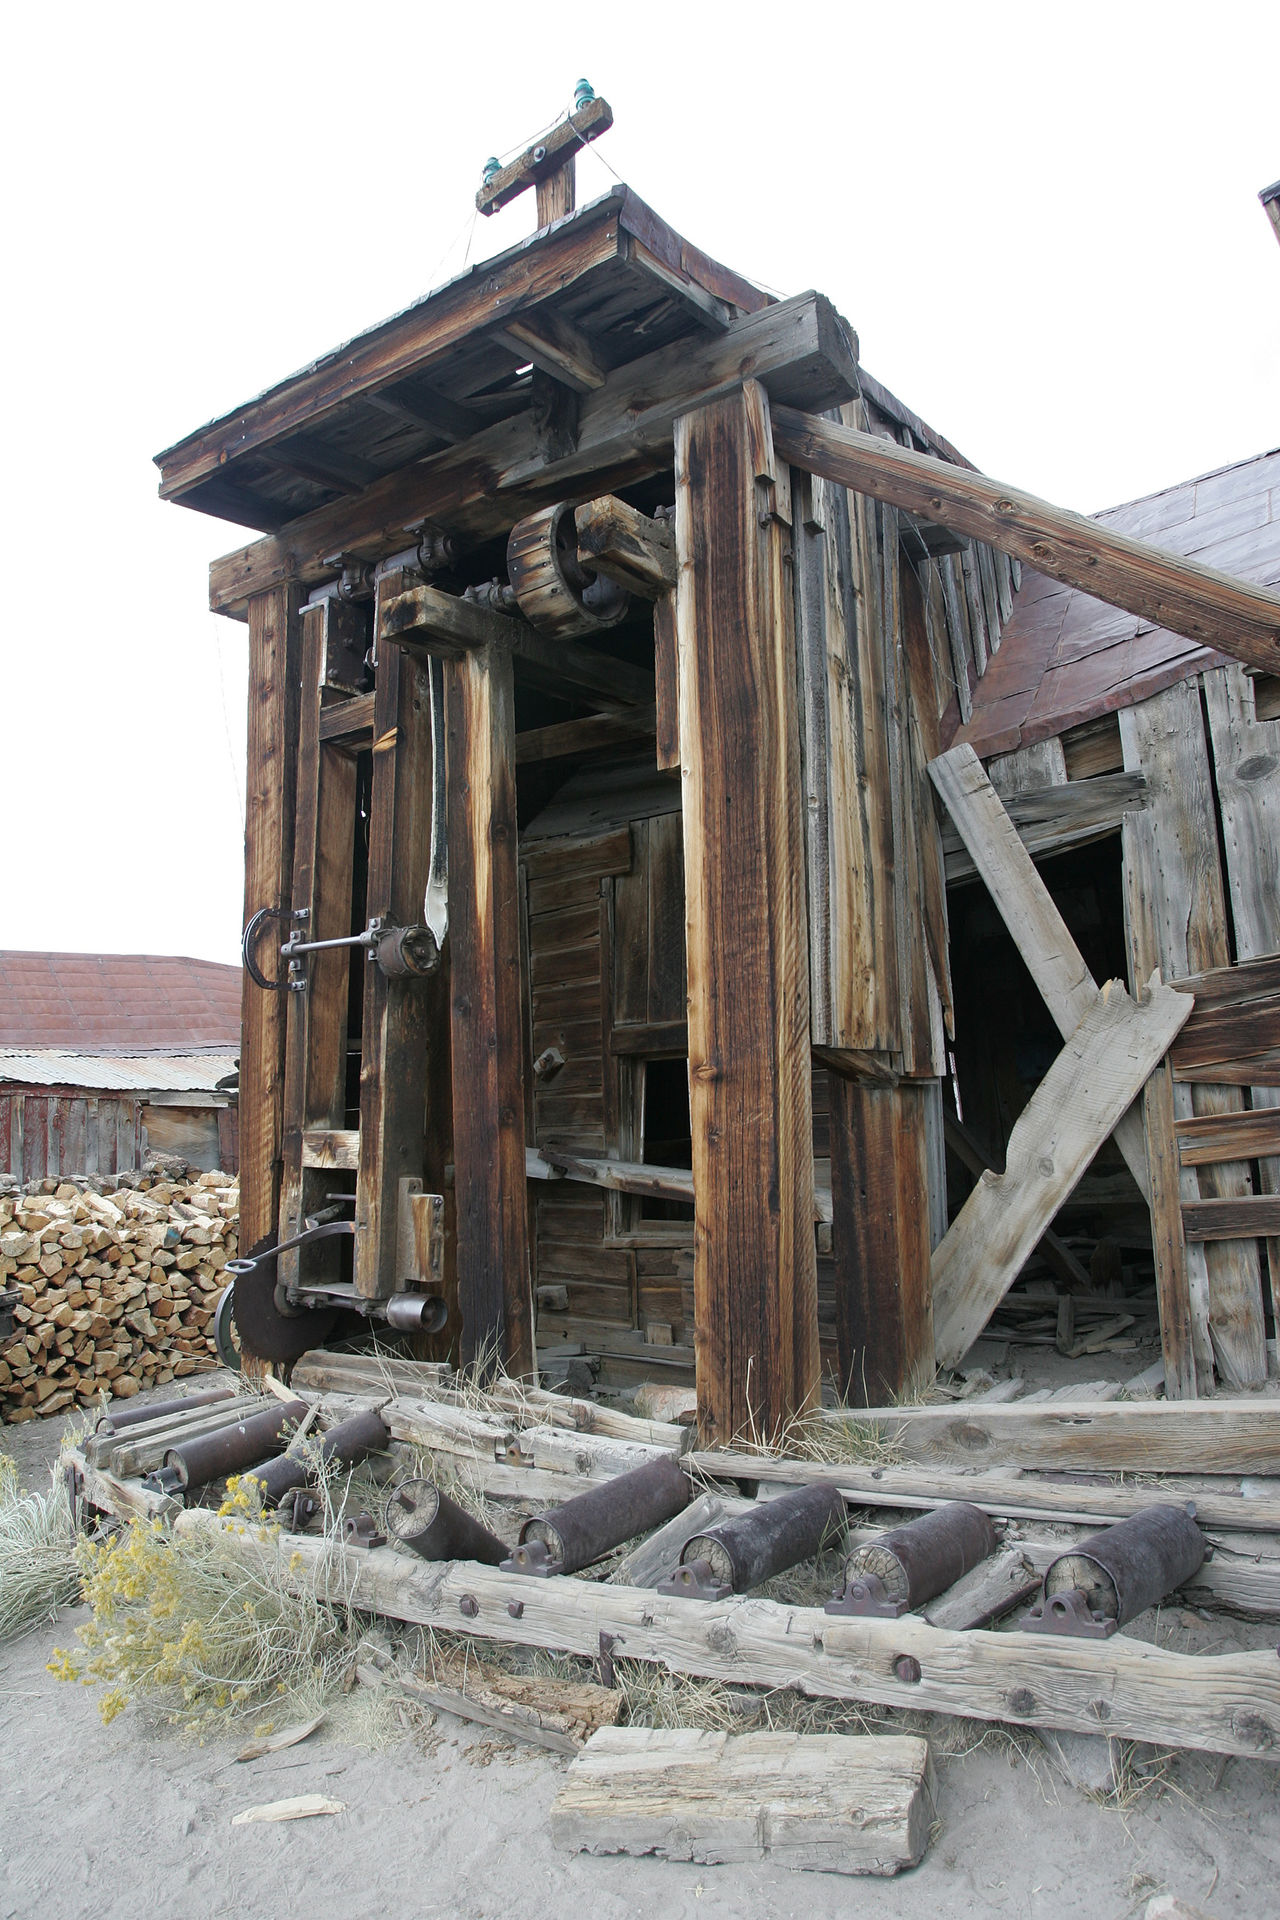 This is the gold mining structure at ghost town of Bodie. Abandoned Architecture Bad Condition Broken Built Structure Damaged Day Deterioration No People Obsolete Old Outdoors Ruined Run-down Sky The Old West The Past Weathered Wood Wood - Material Wooden